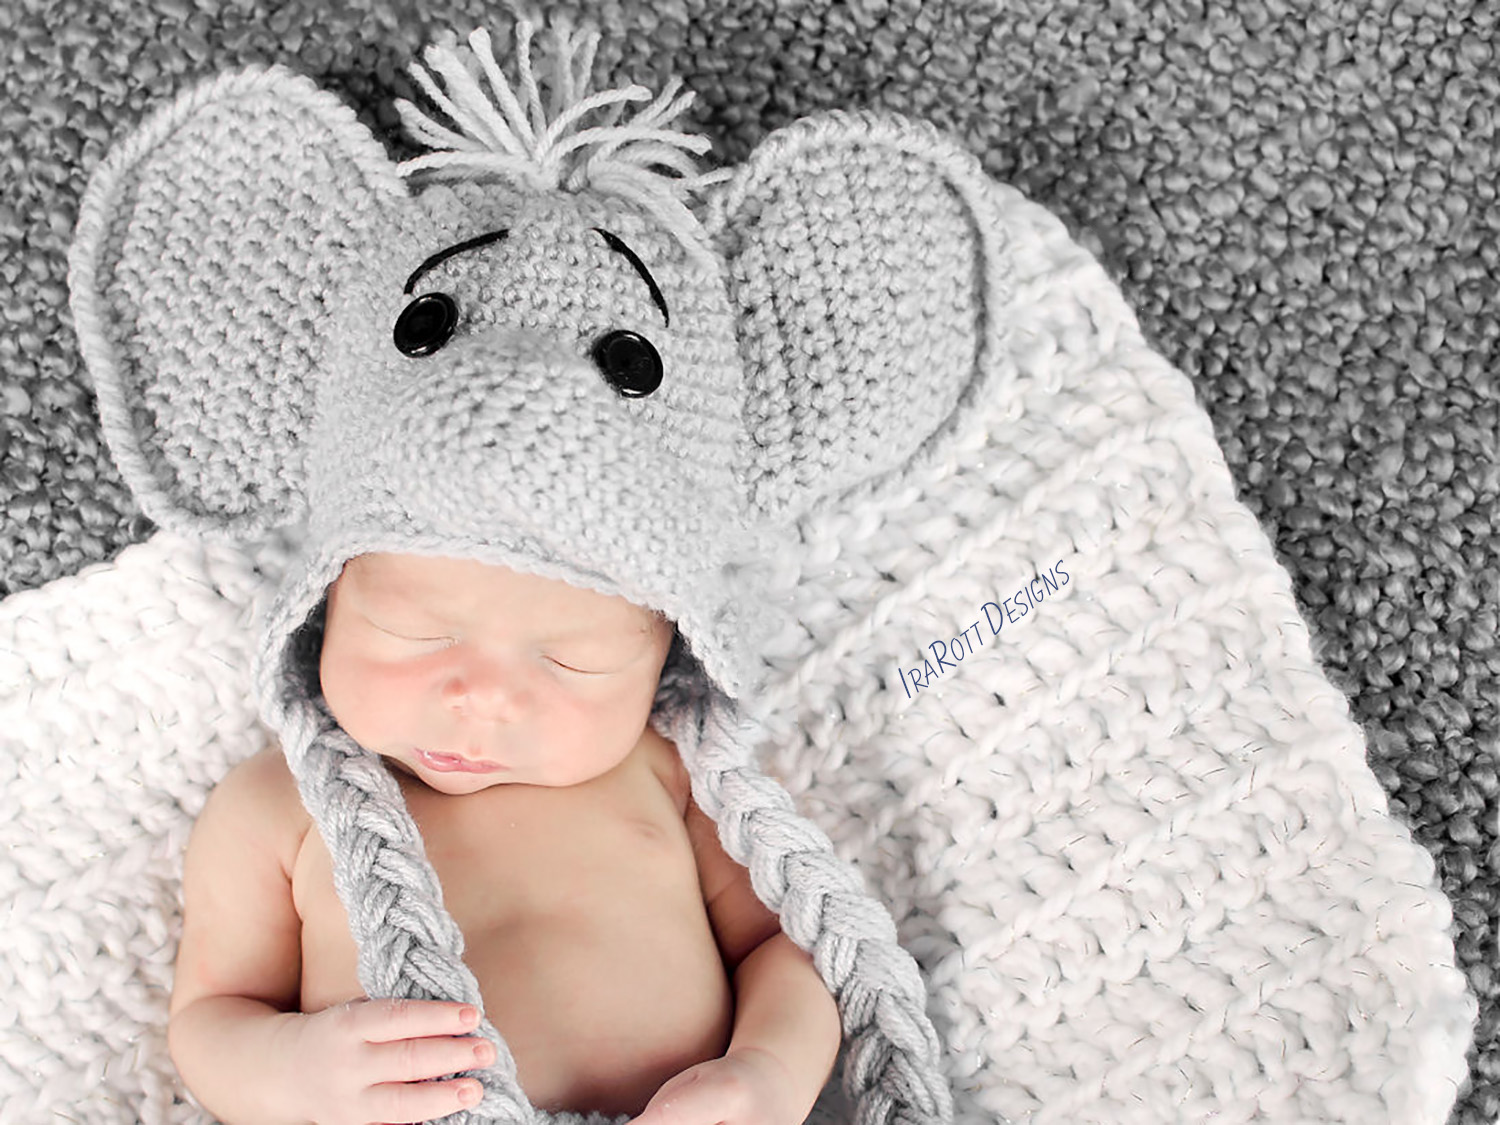 bf9634be208 PDF Crochet Pattern for making an adorable Baby Elephant Hat and Diaper  Cover Photo Prop Set